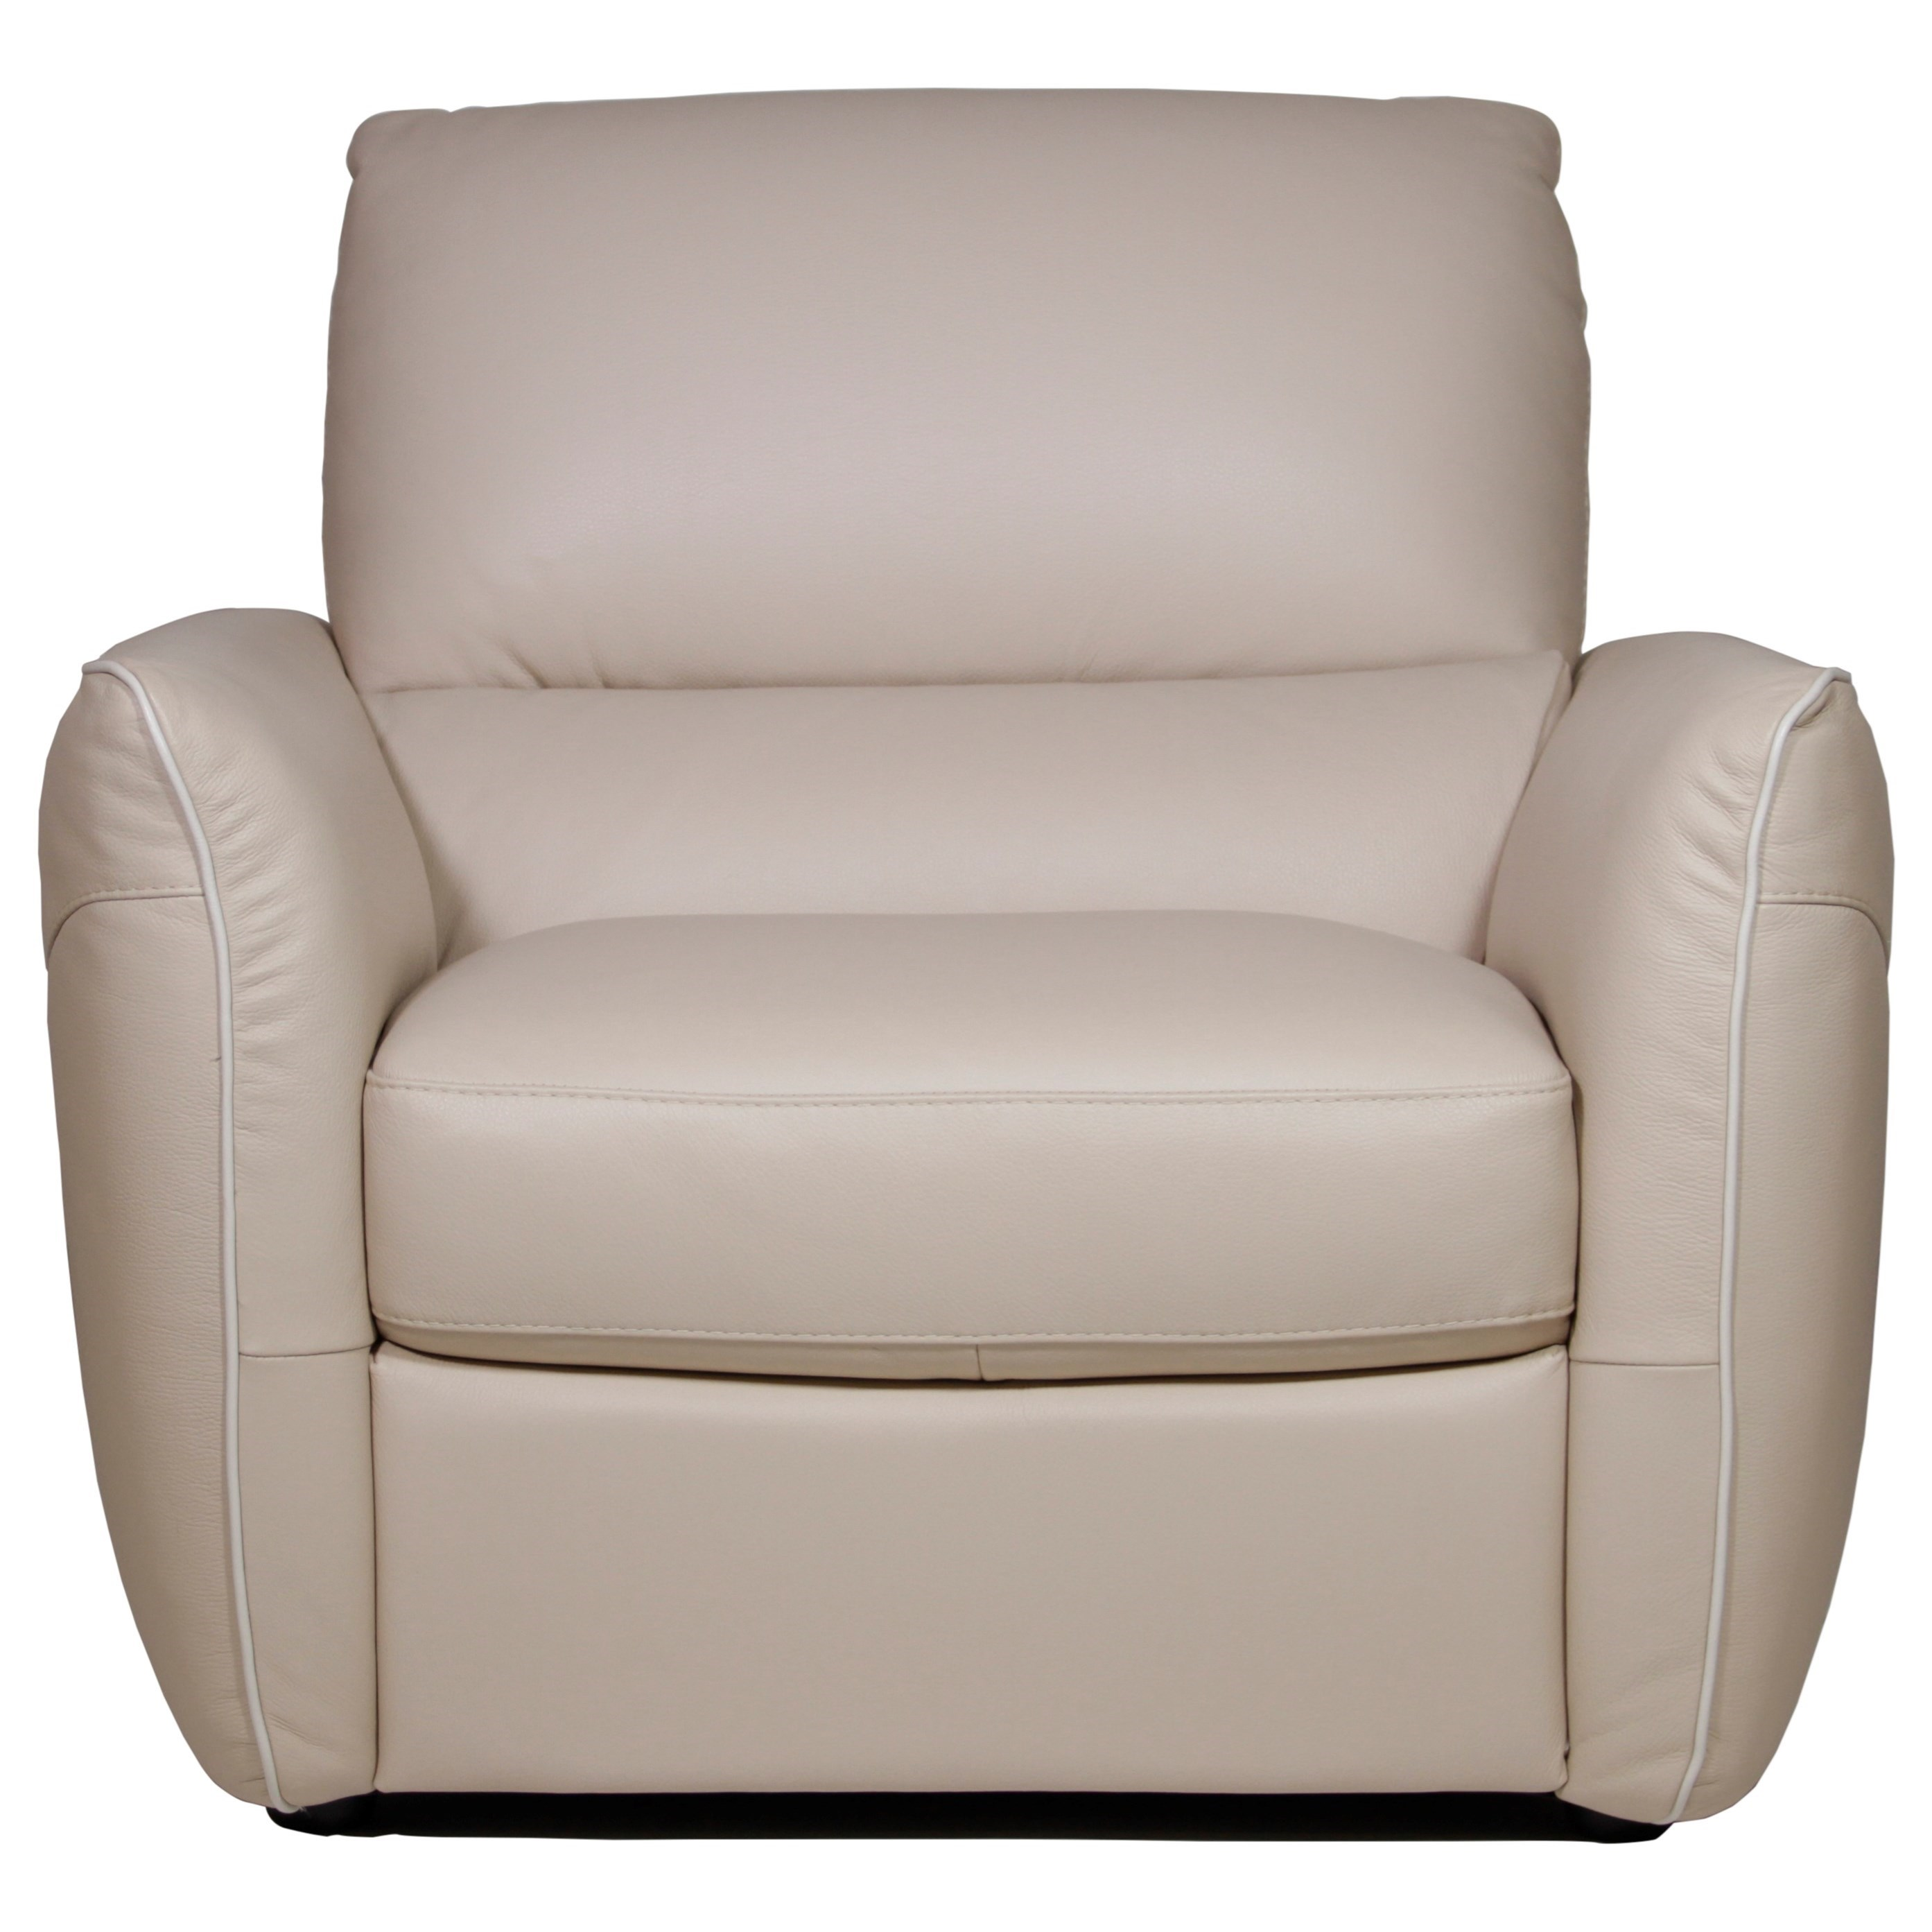 B842 Chair by Natuzzi Editions at Williams & Kay